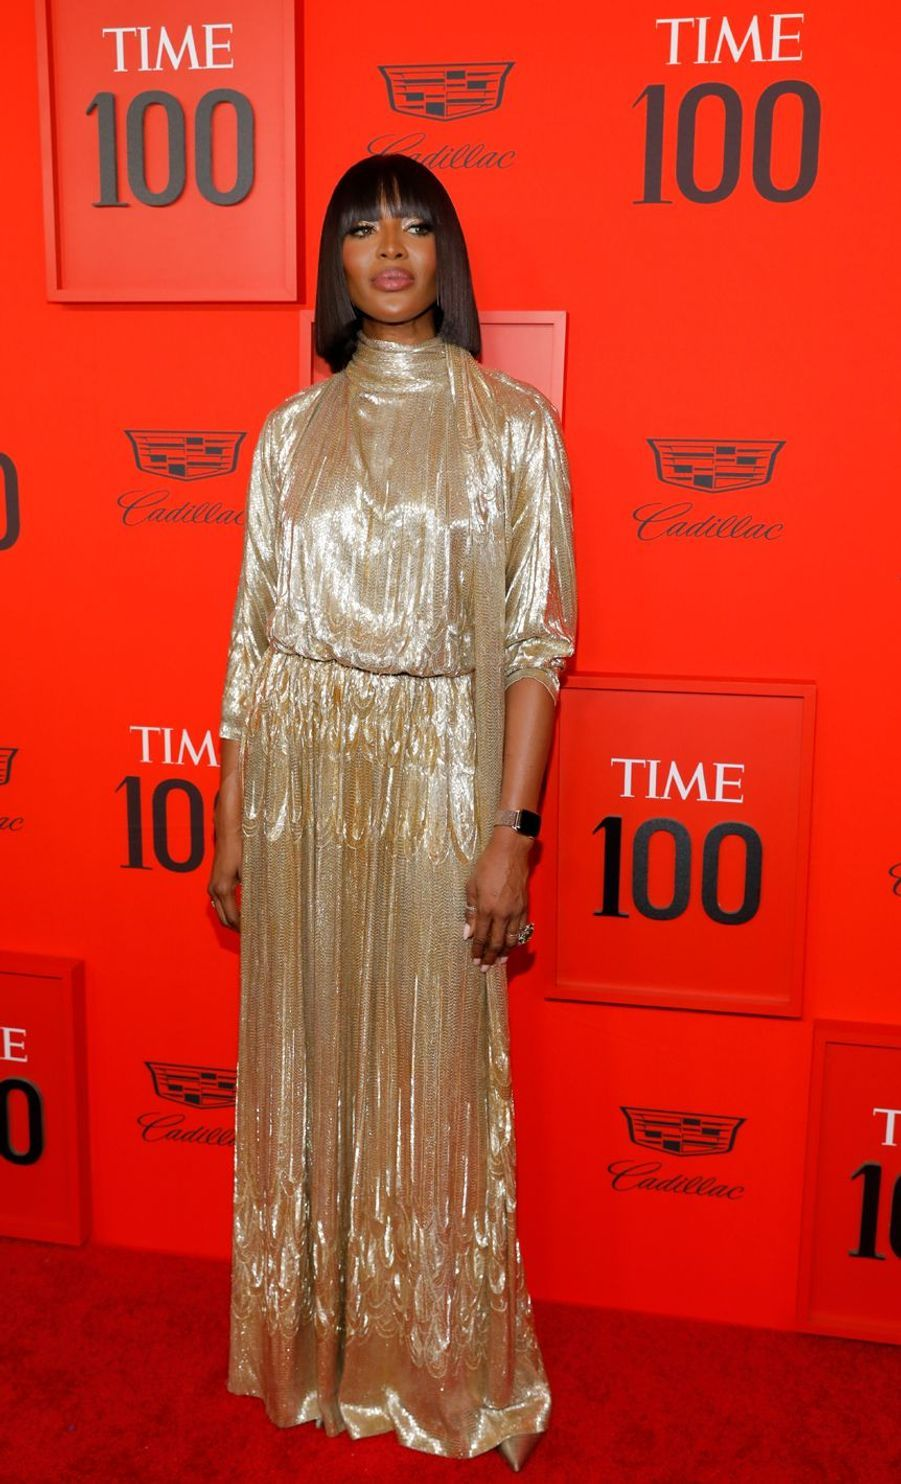 Naomi Campbell au Time 100 Gala à New York le 23 avril 2019